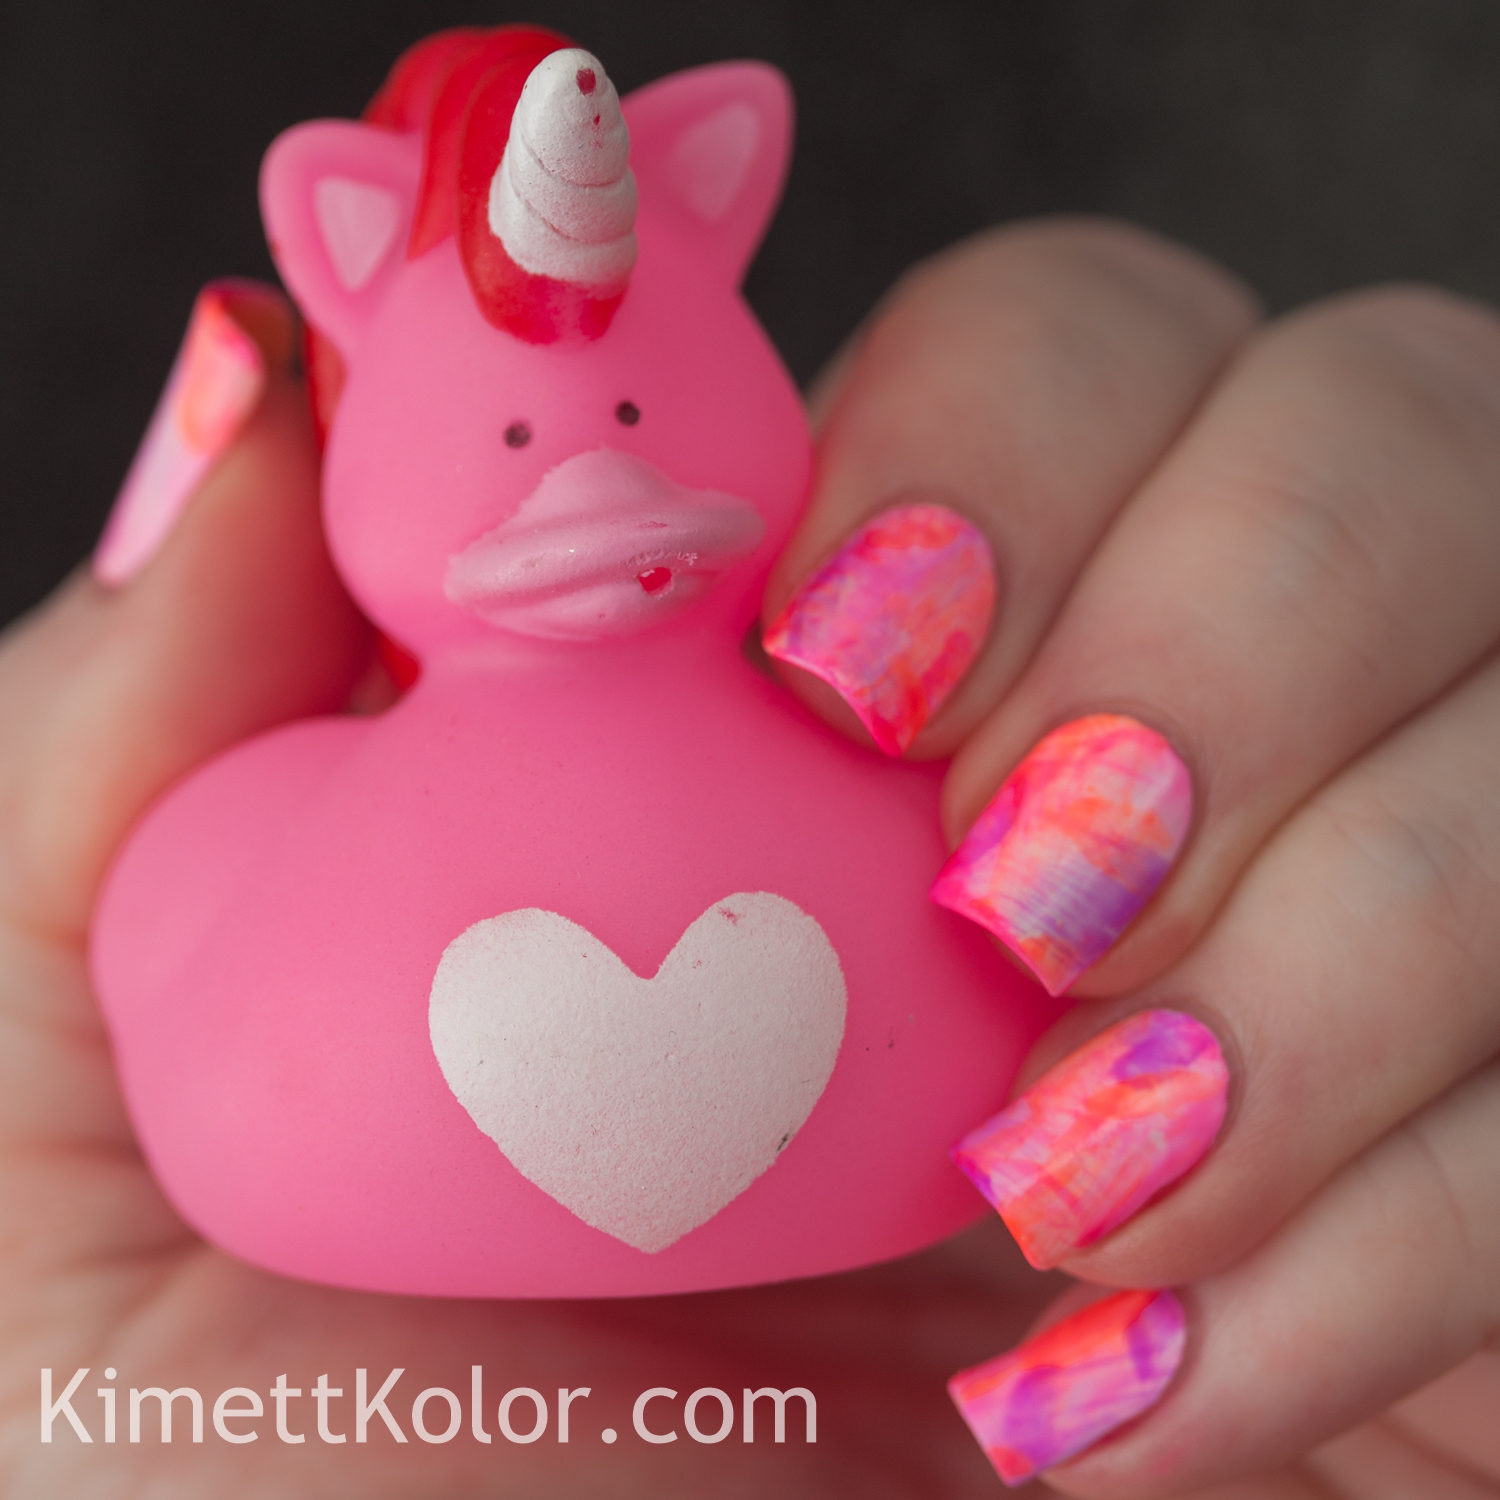 KimettKolor Neon Dry Marble Nail Art with Doctor Lacquer